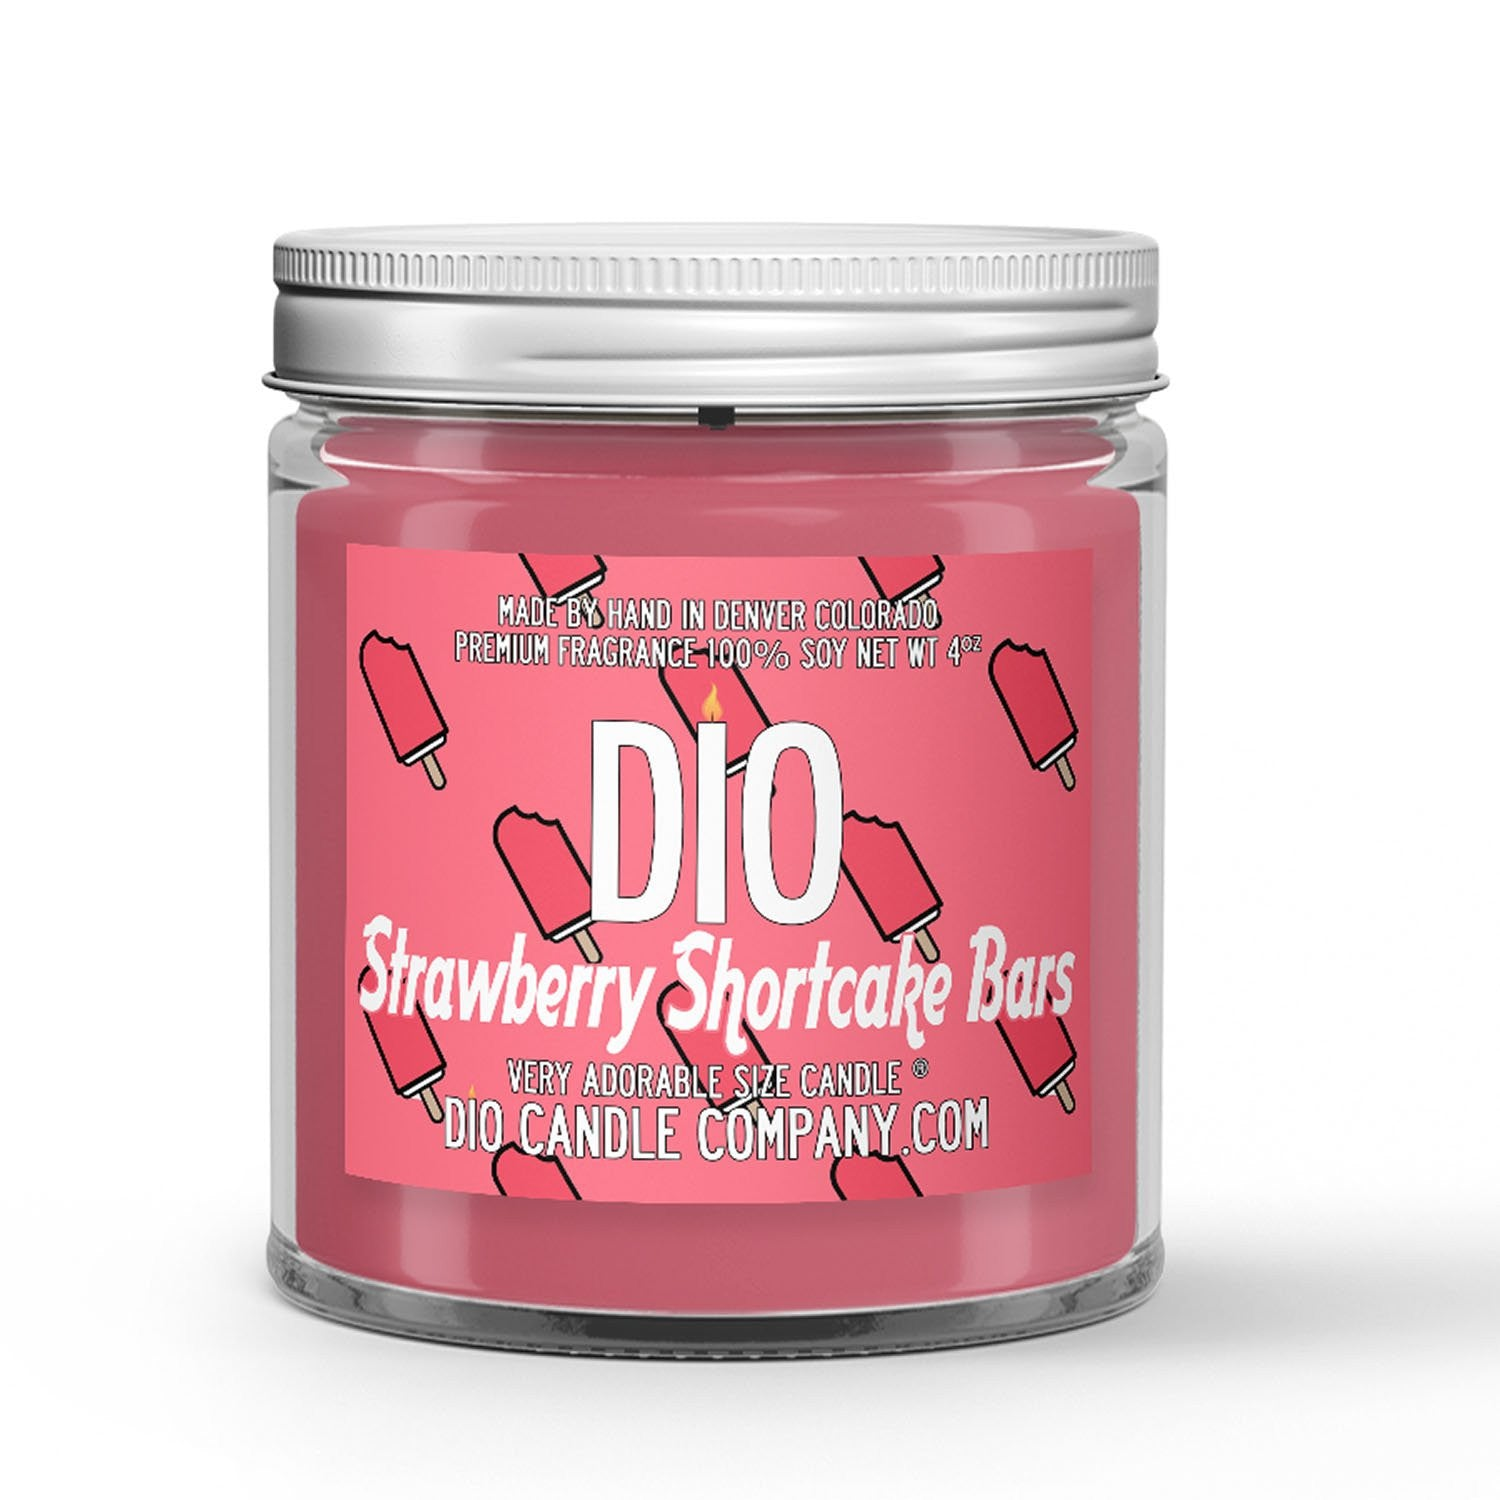 Strawberry Shortcake Ice Cream Candle - Ice Cream - Strawberries - Cake - 4oz Very Adorable Size Candle® - Dio Candle Company